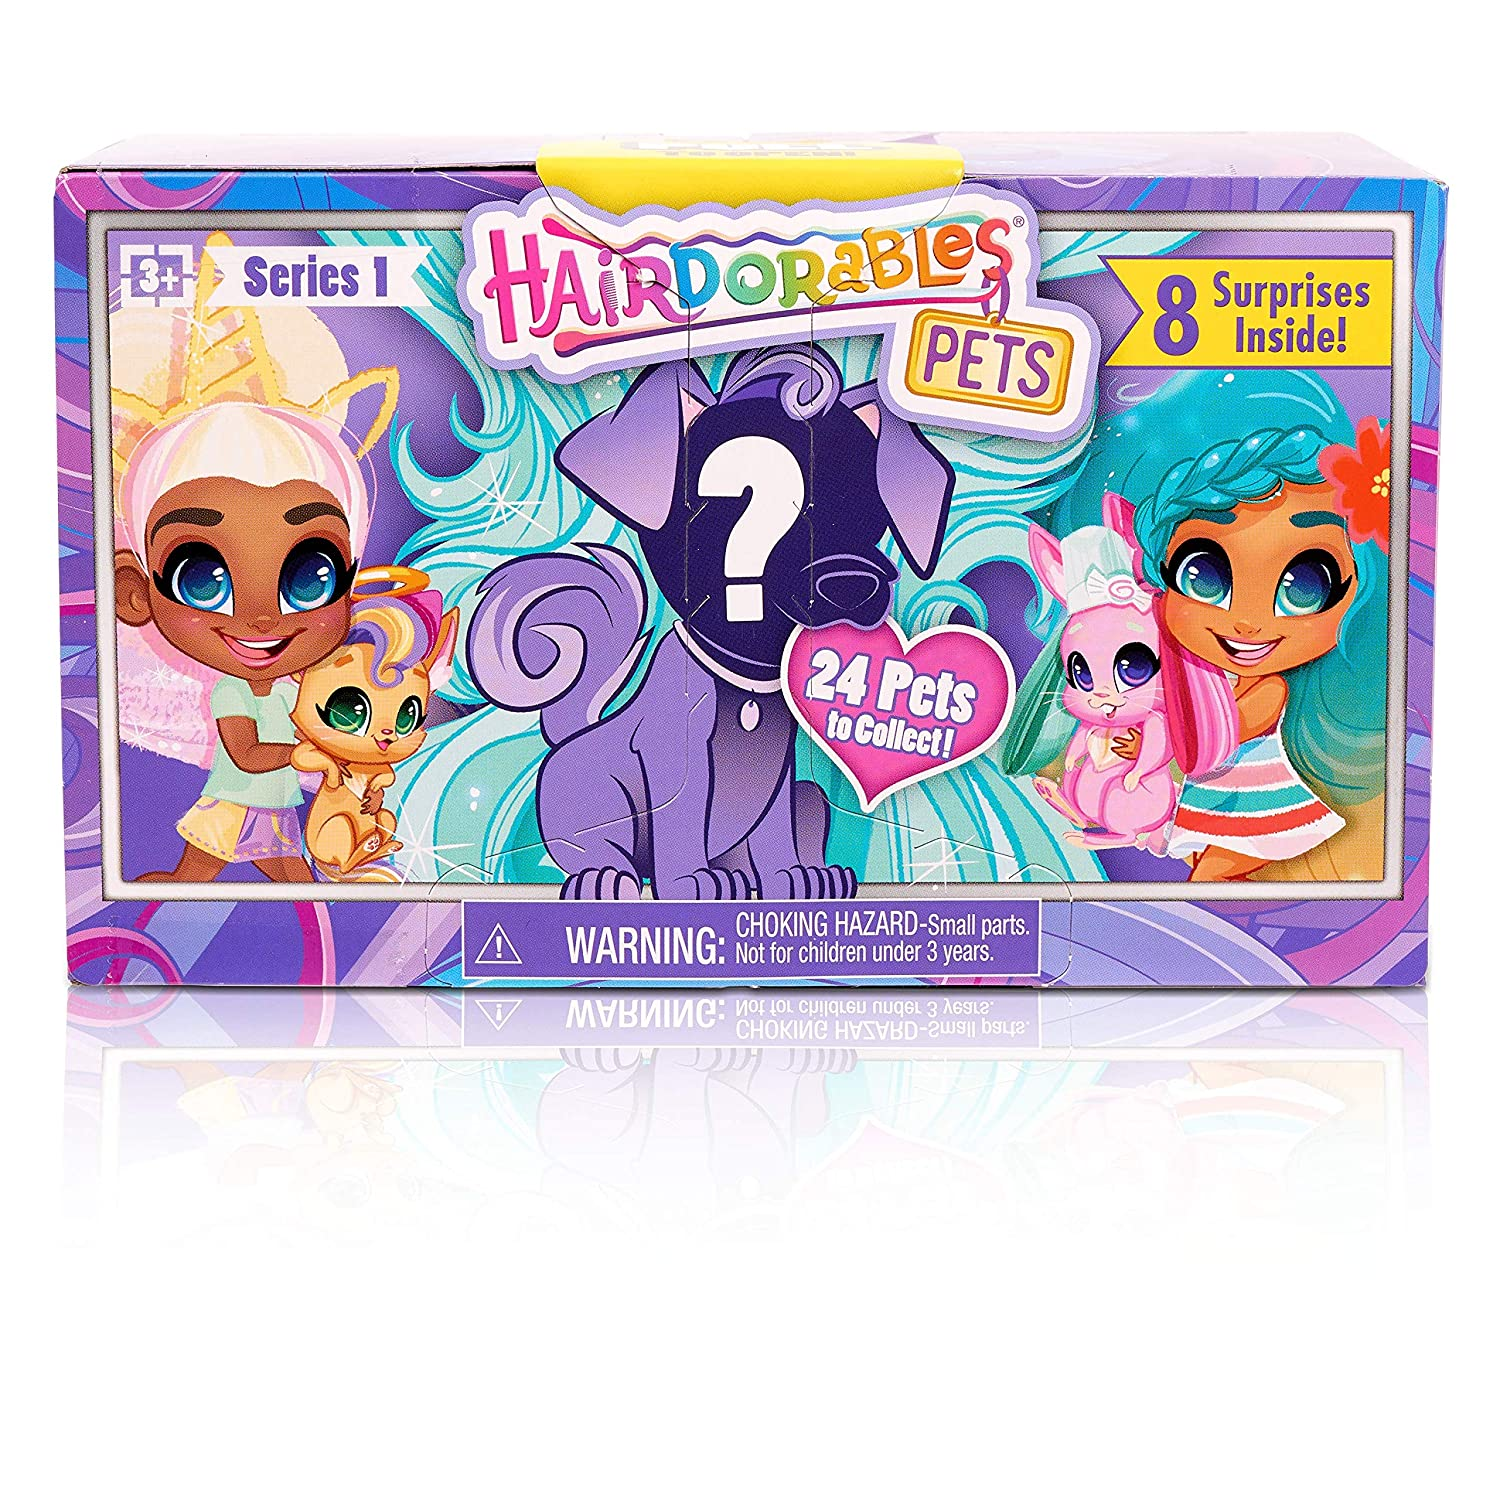 Hairdorables Pets Set Series 1 Styles May Vary